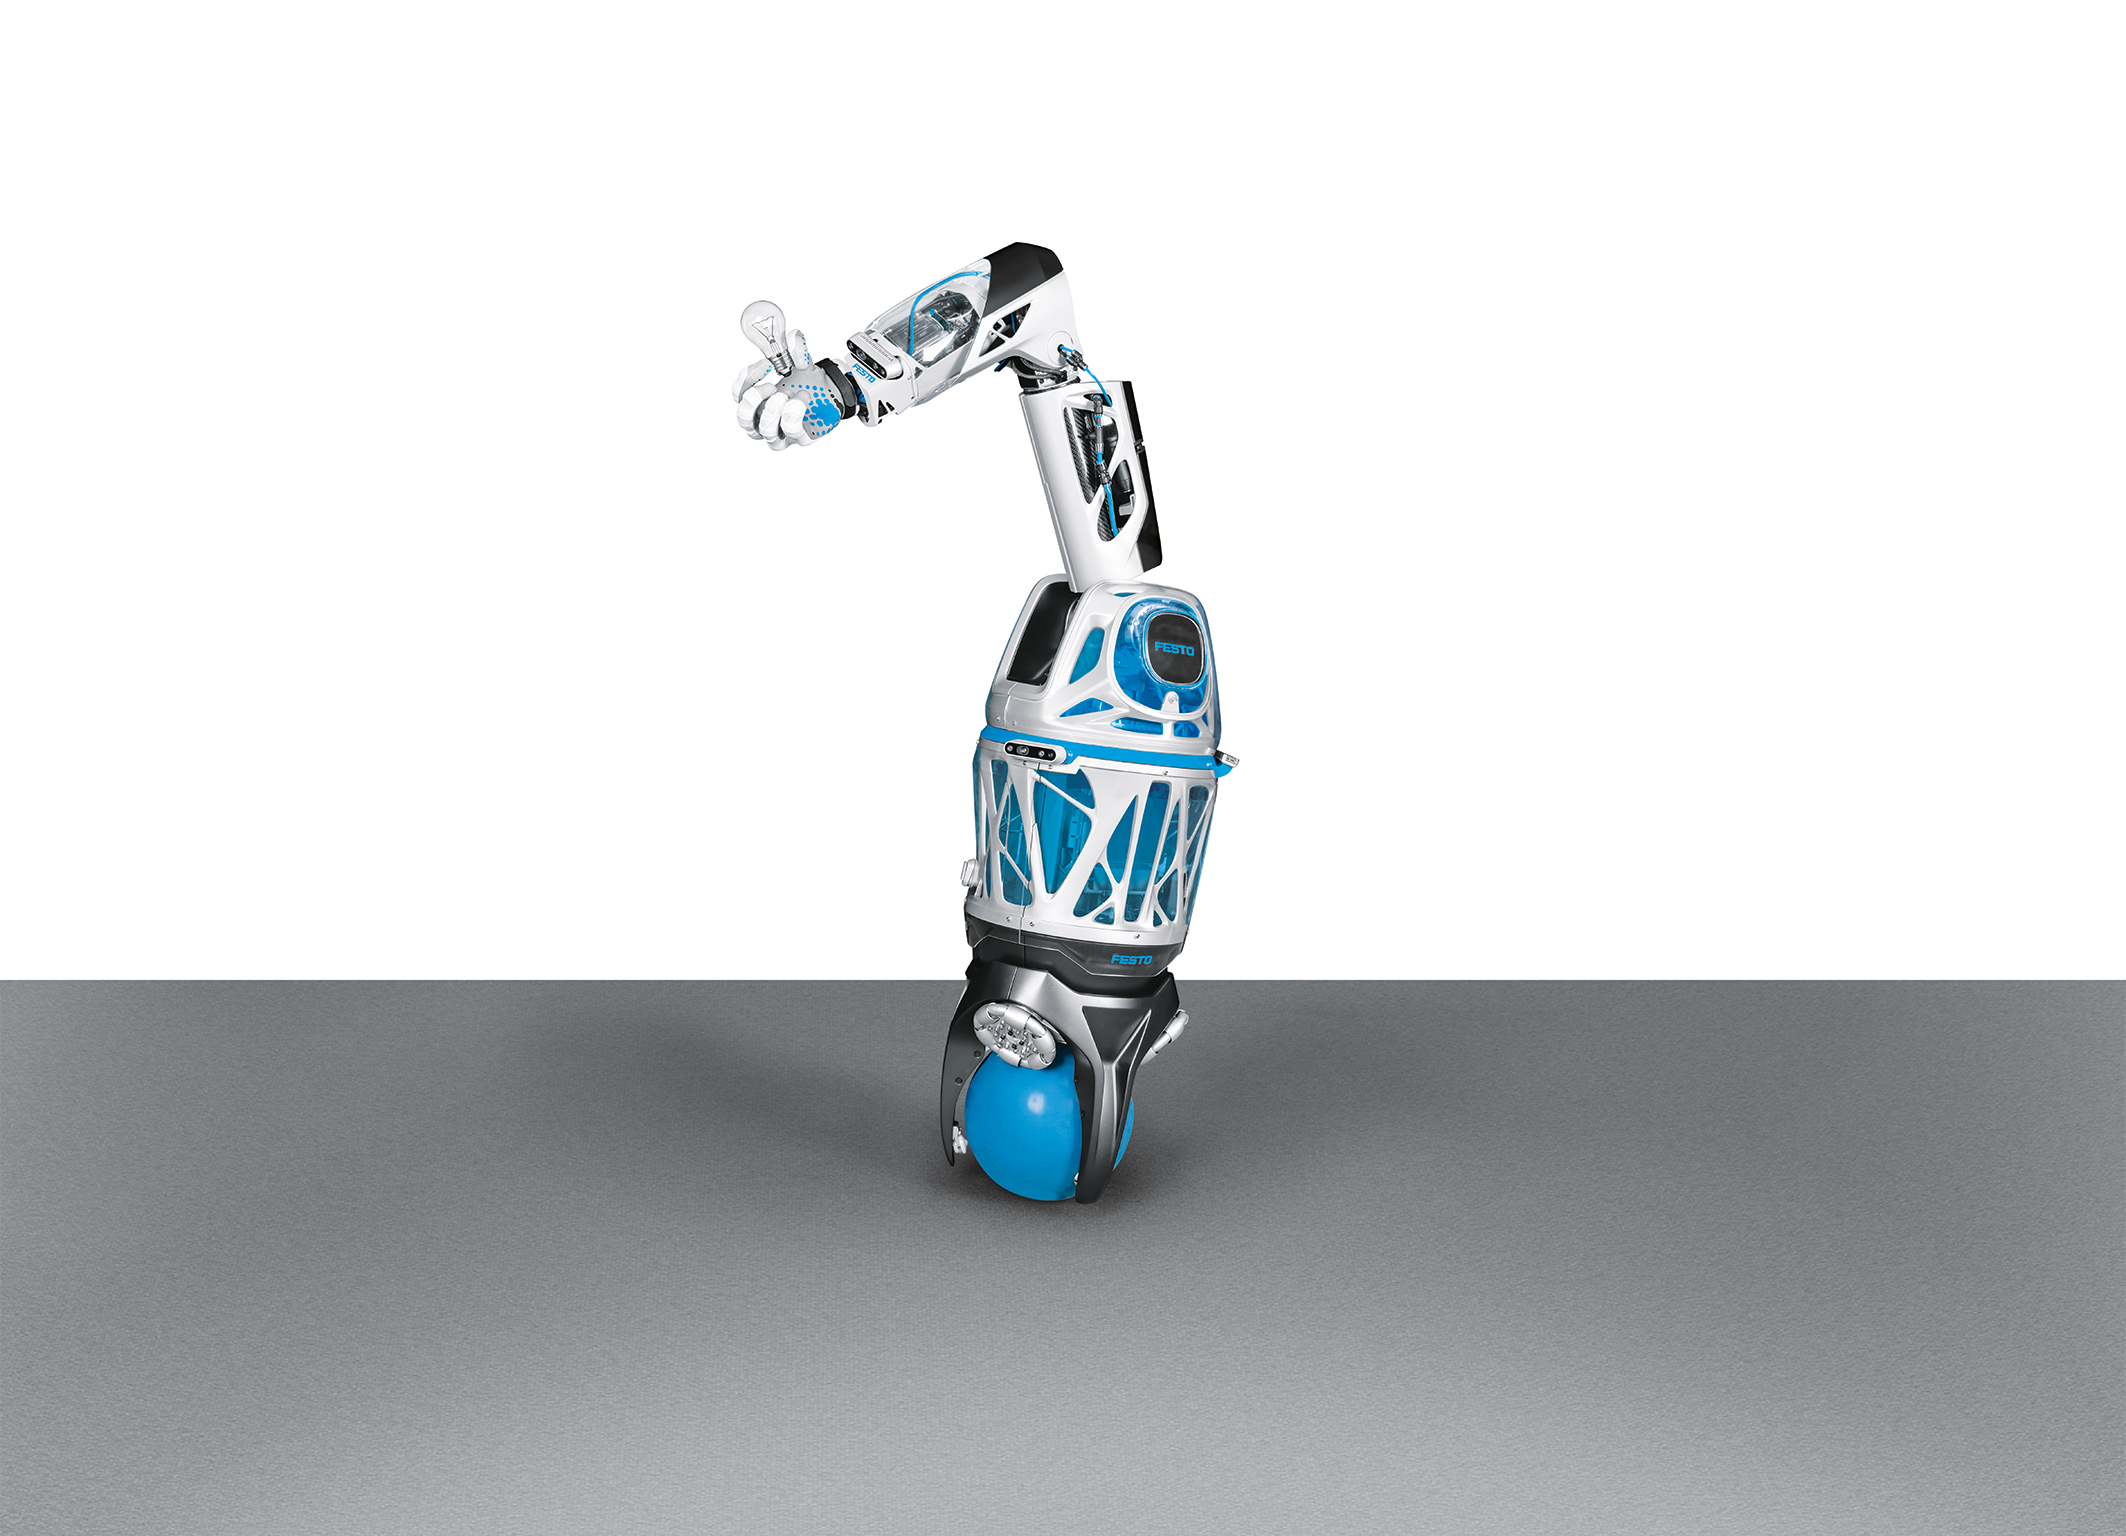 Bionic Mobile Assistant